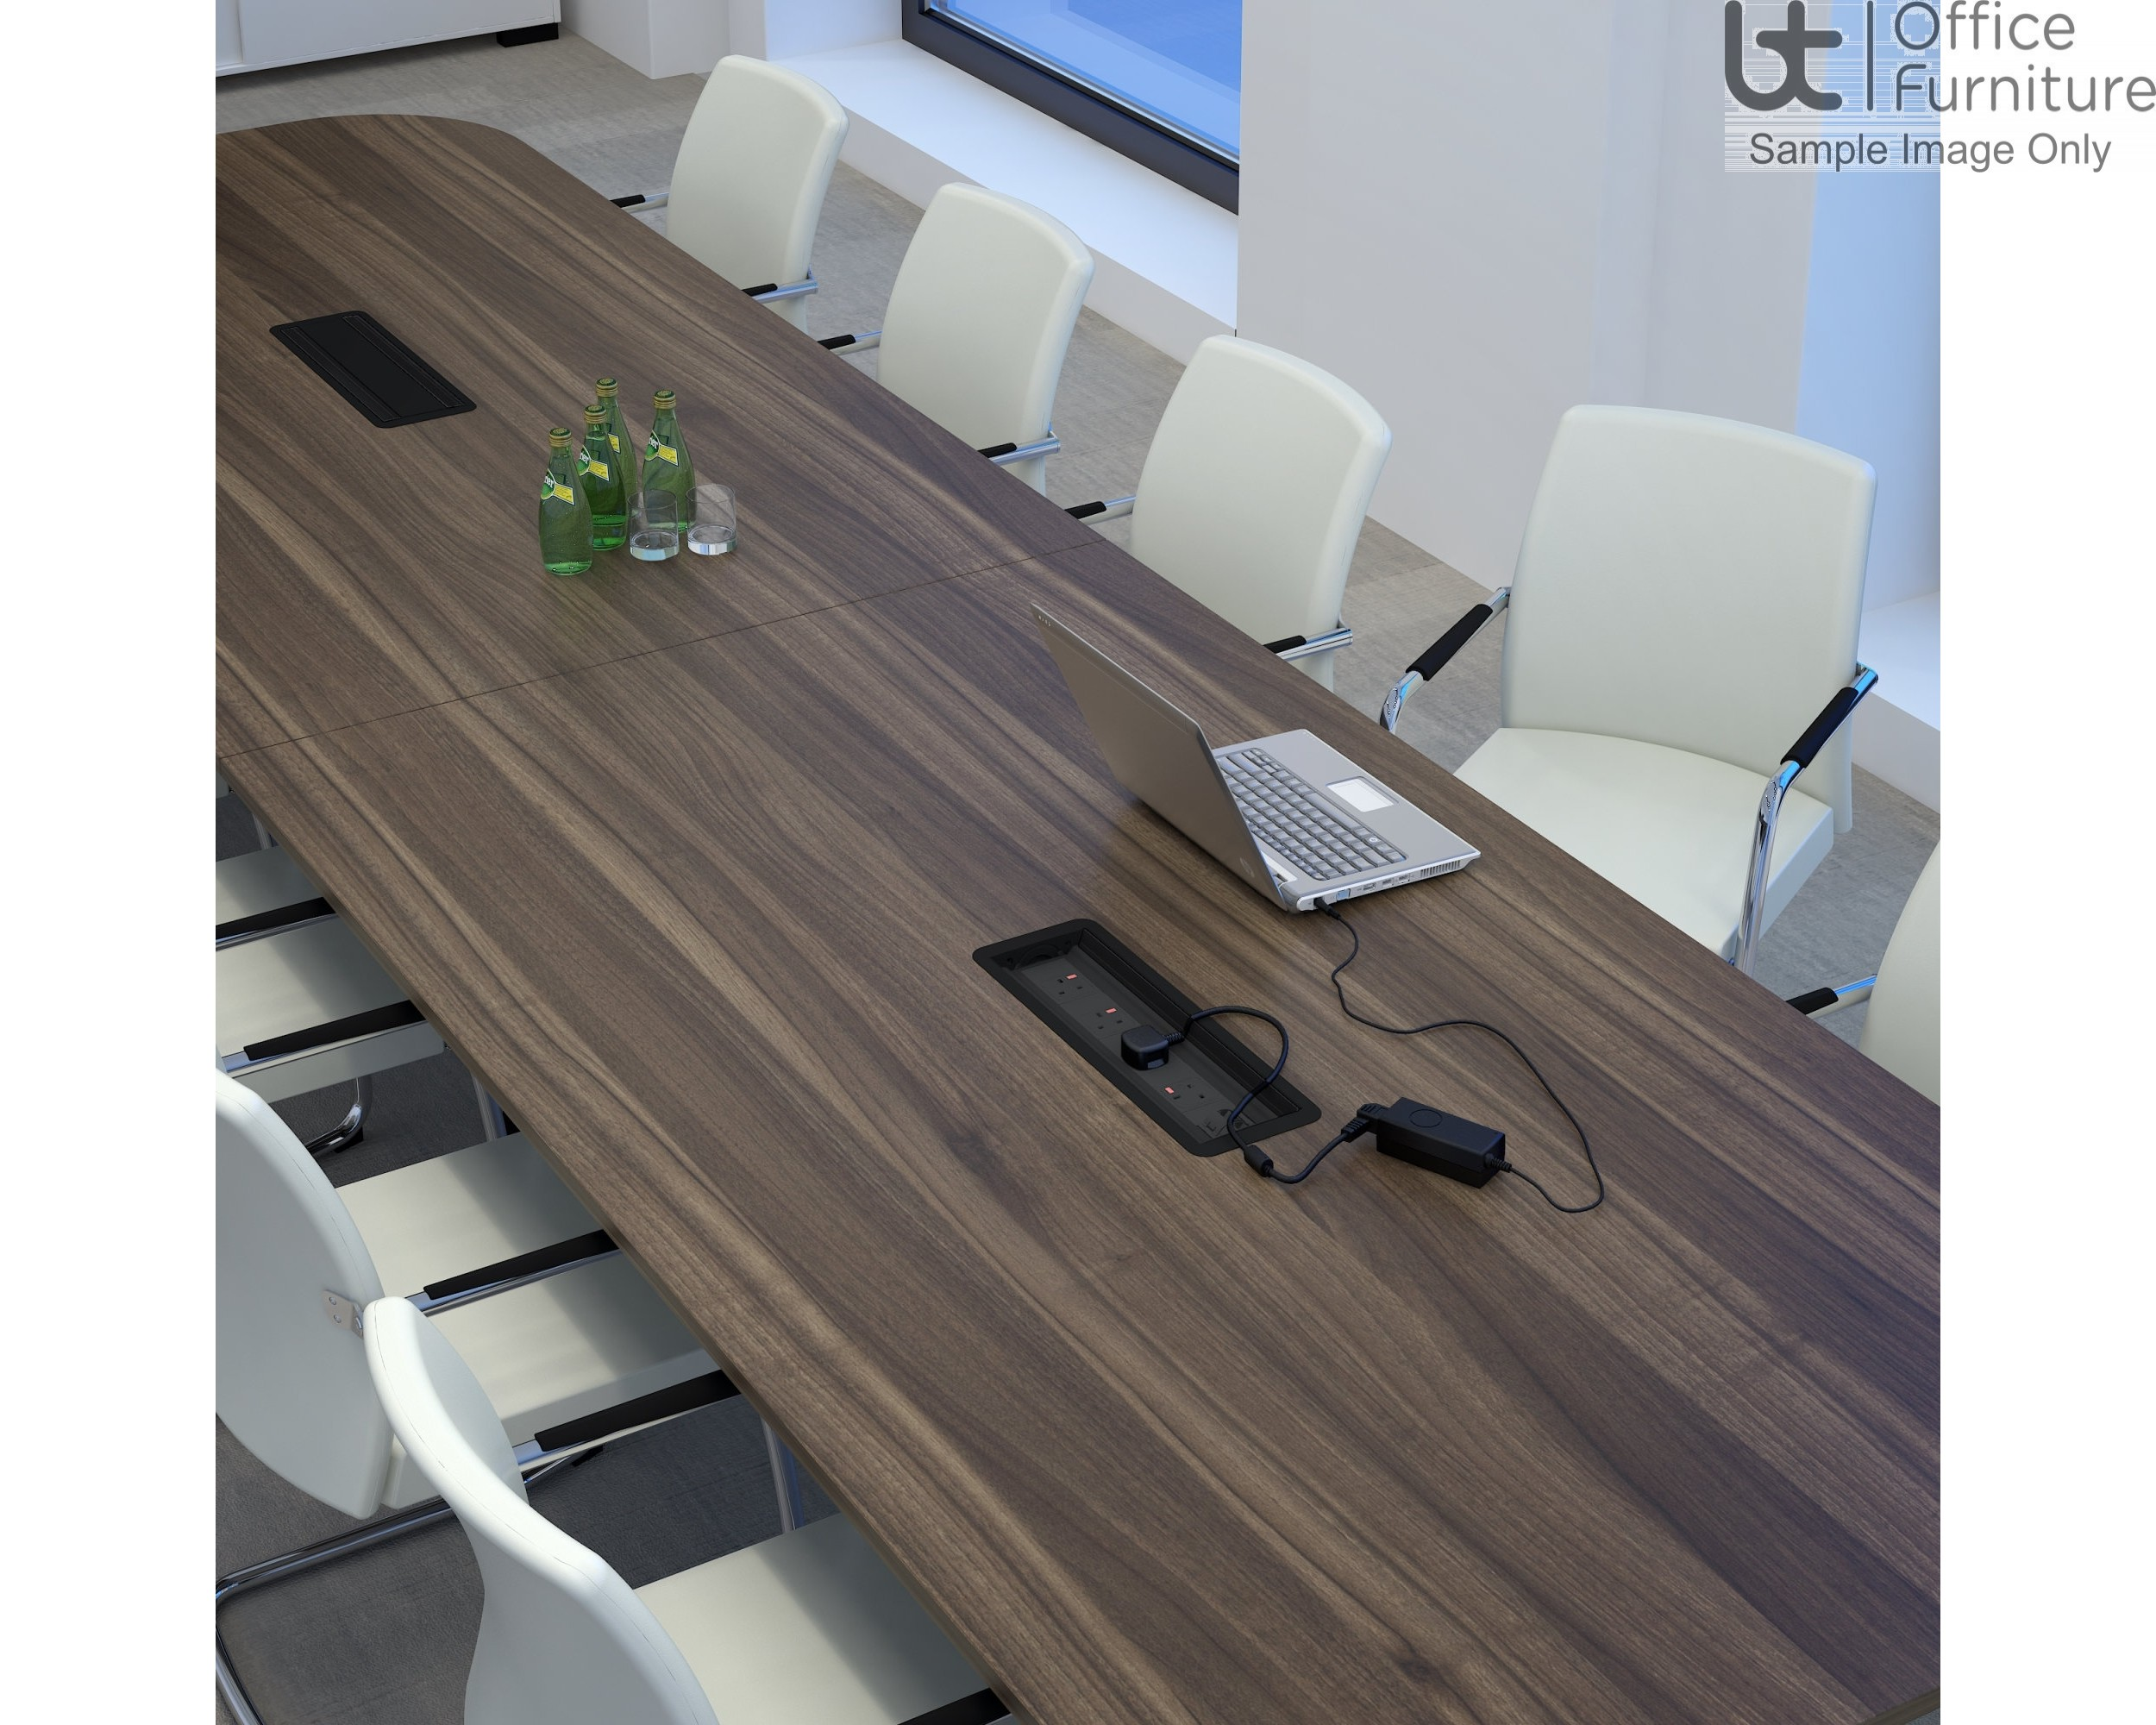 Elite Linnea Table - Double D Ended Conference Table - Seats 8 People